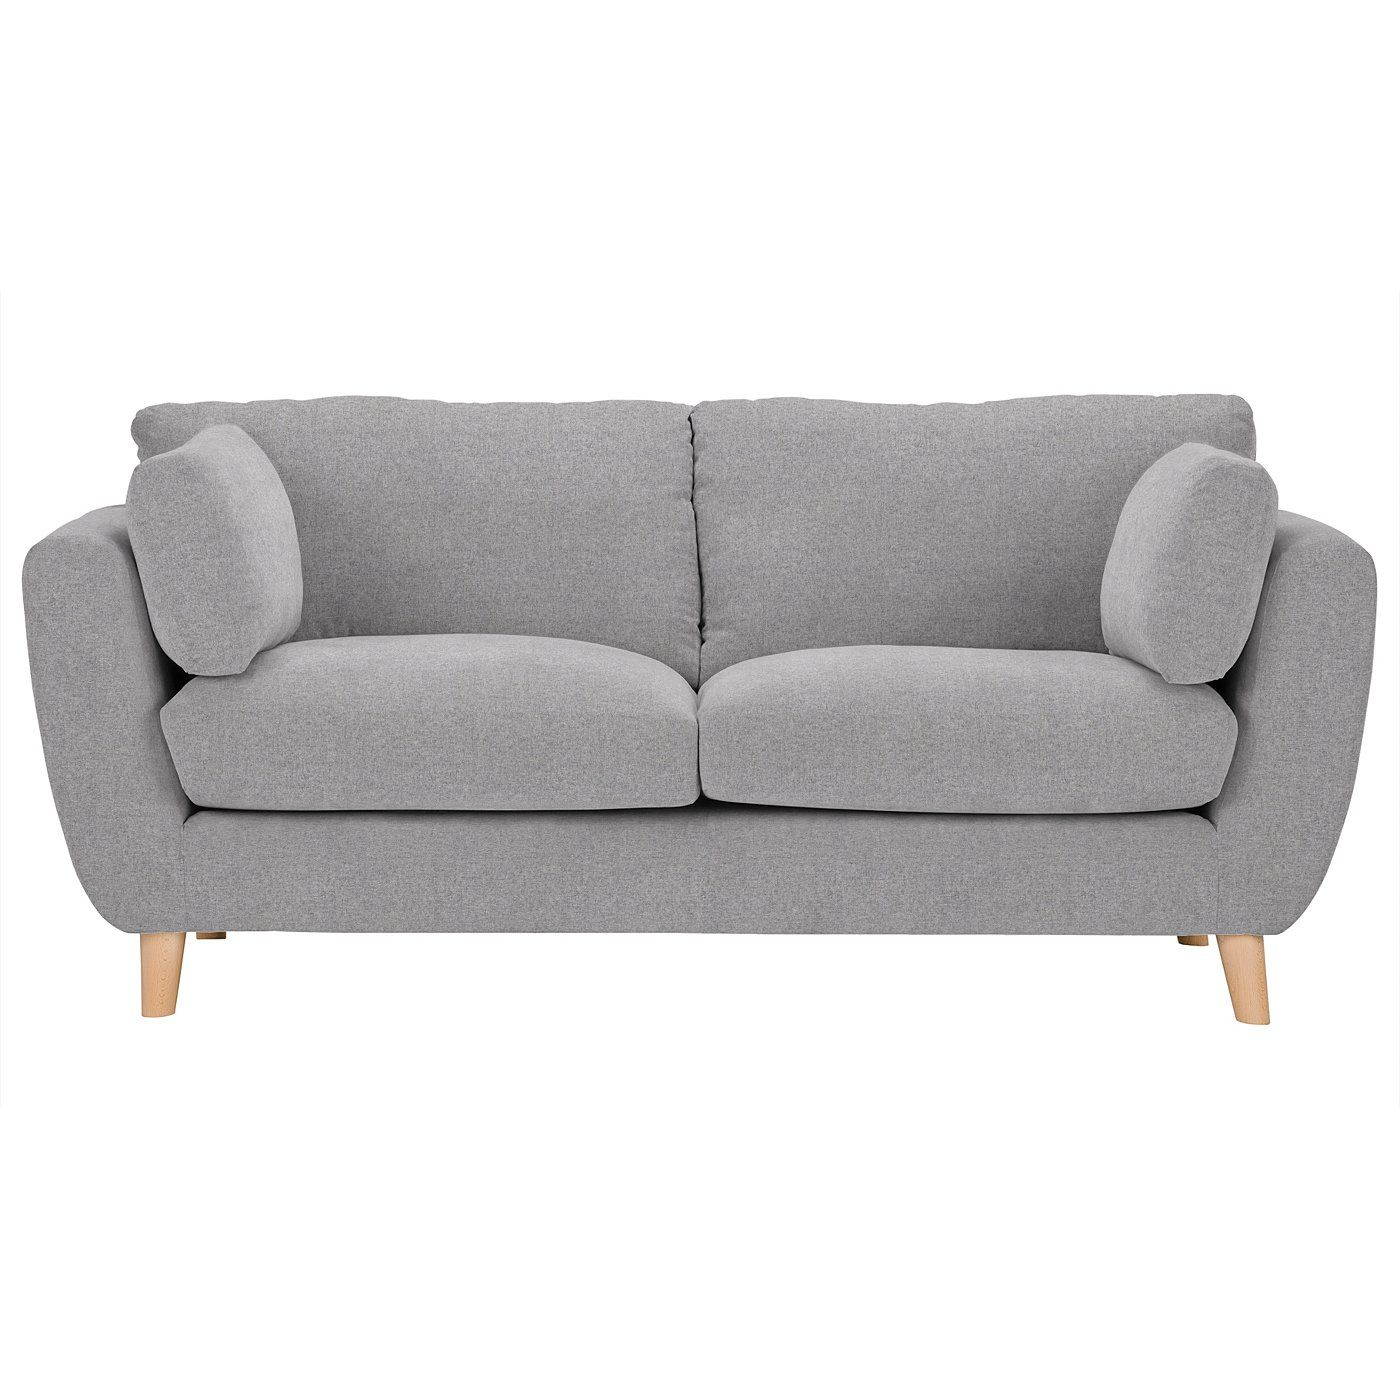 George Home Glynn Sofa in Woollen Blend £595 00